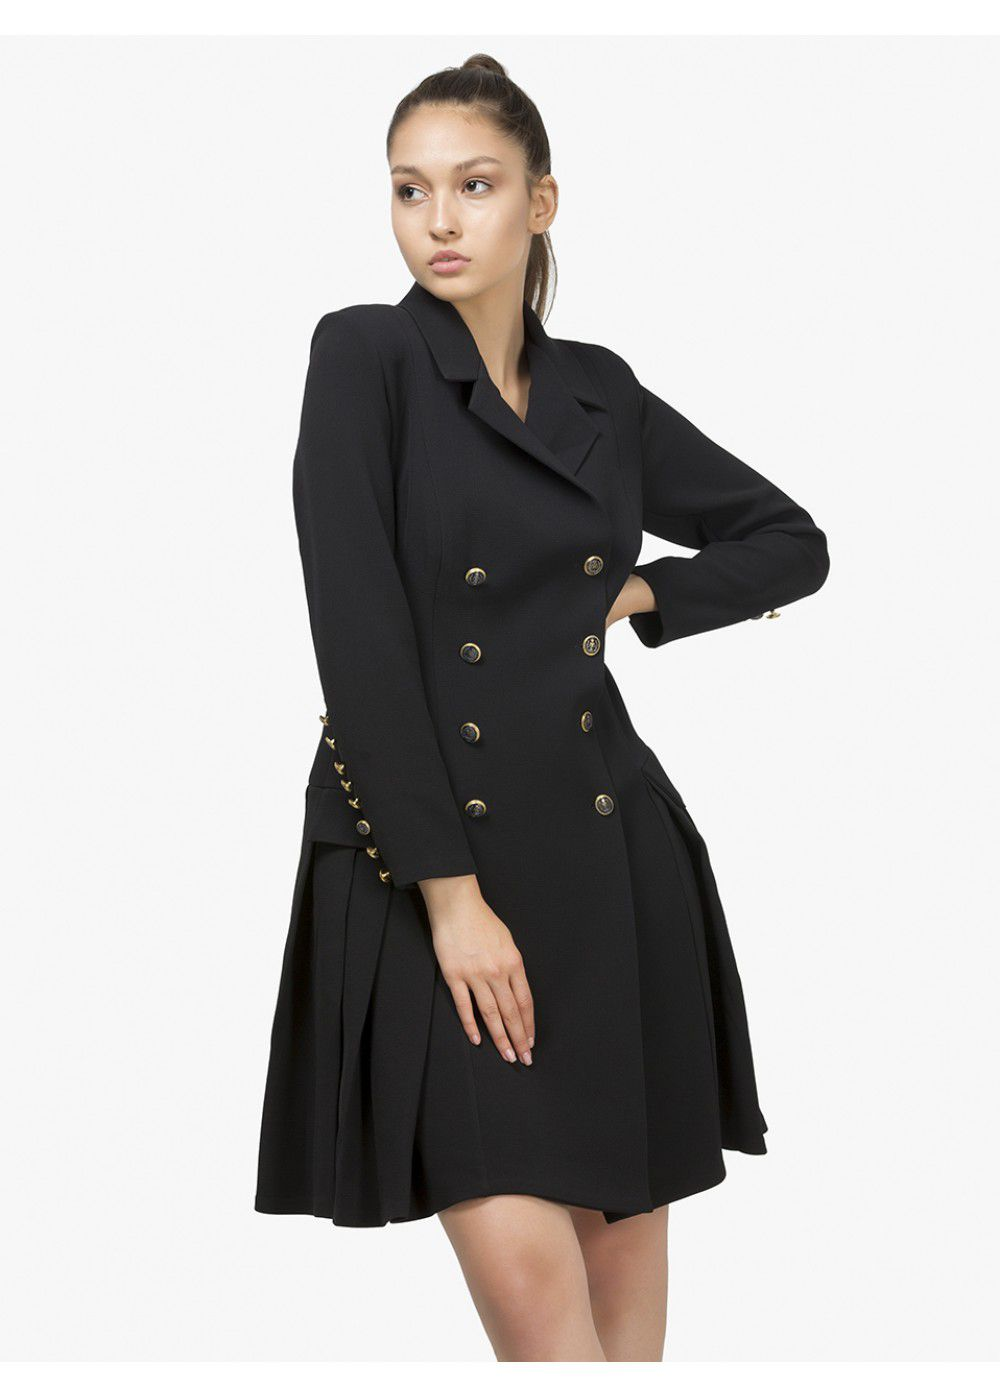 Maleone Dress Jacket Black Short